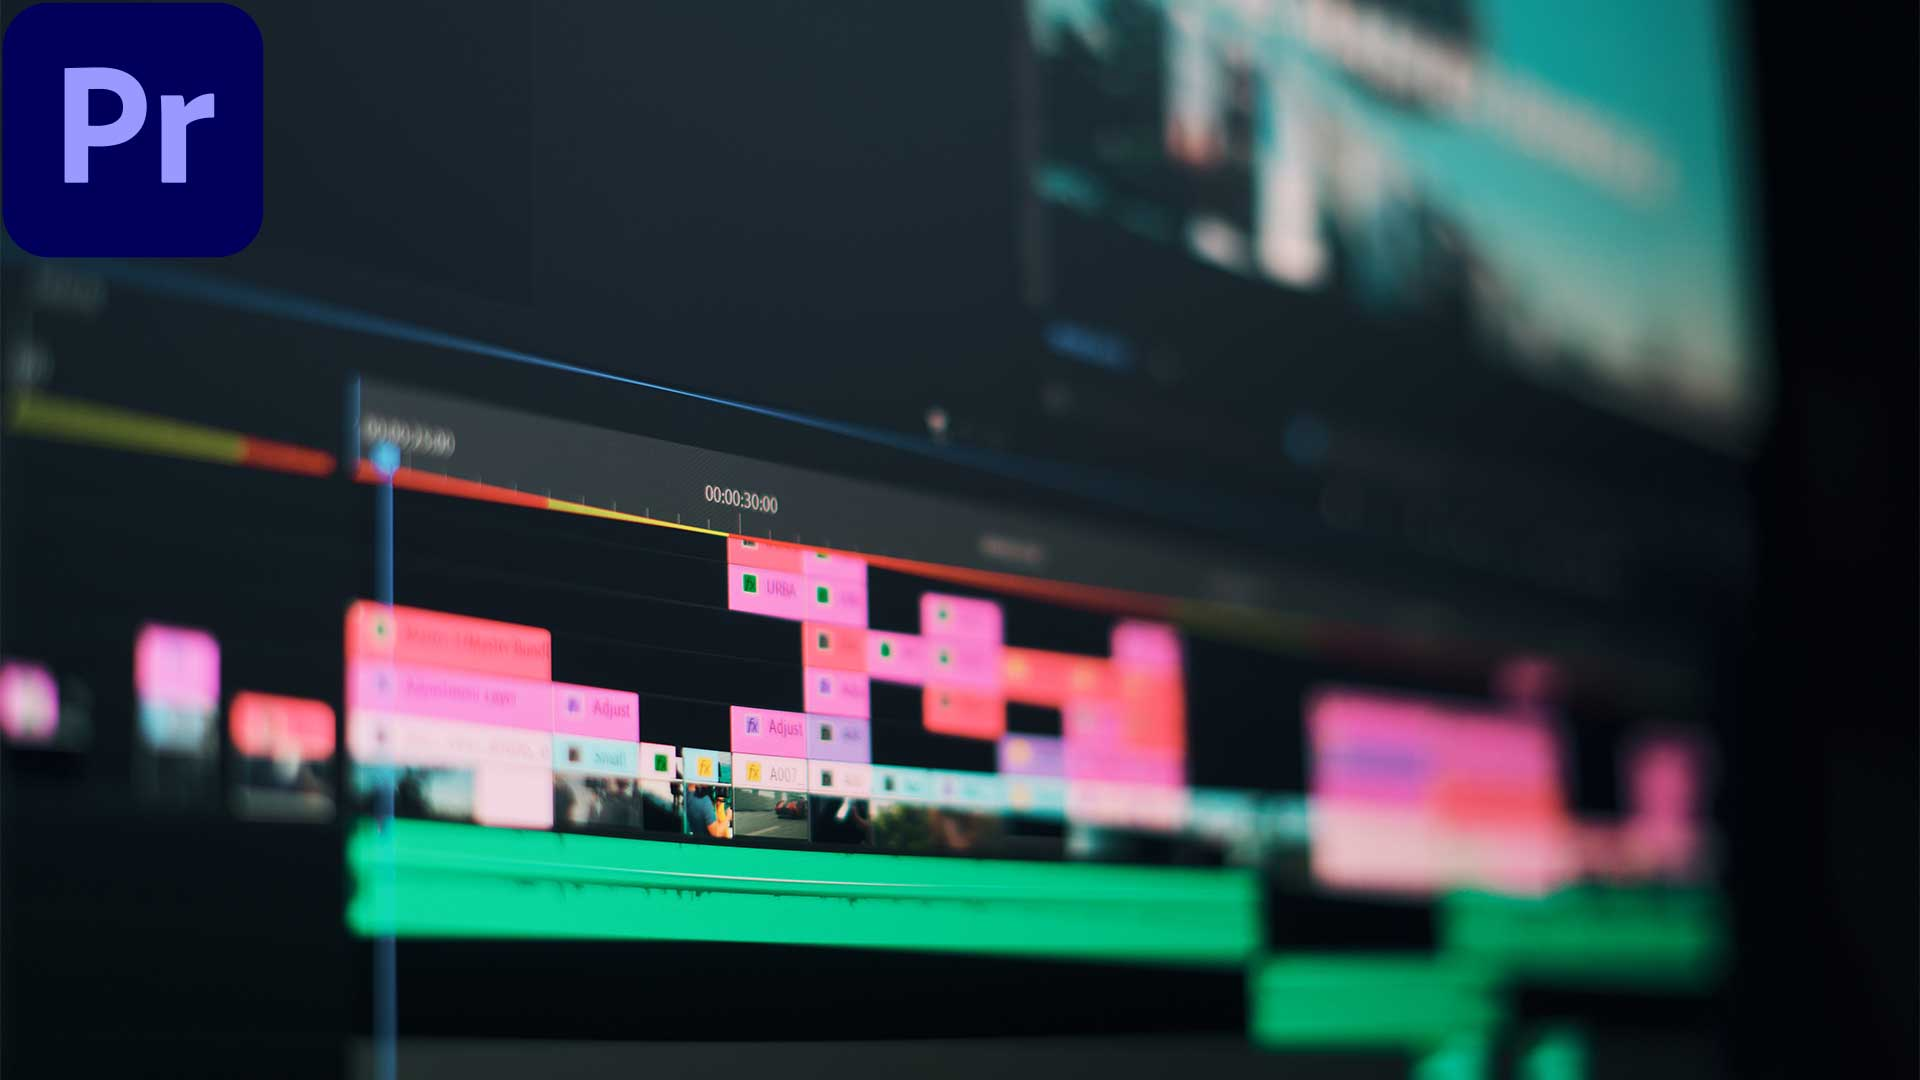 text in premiere pro